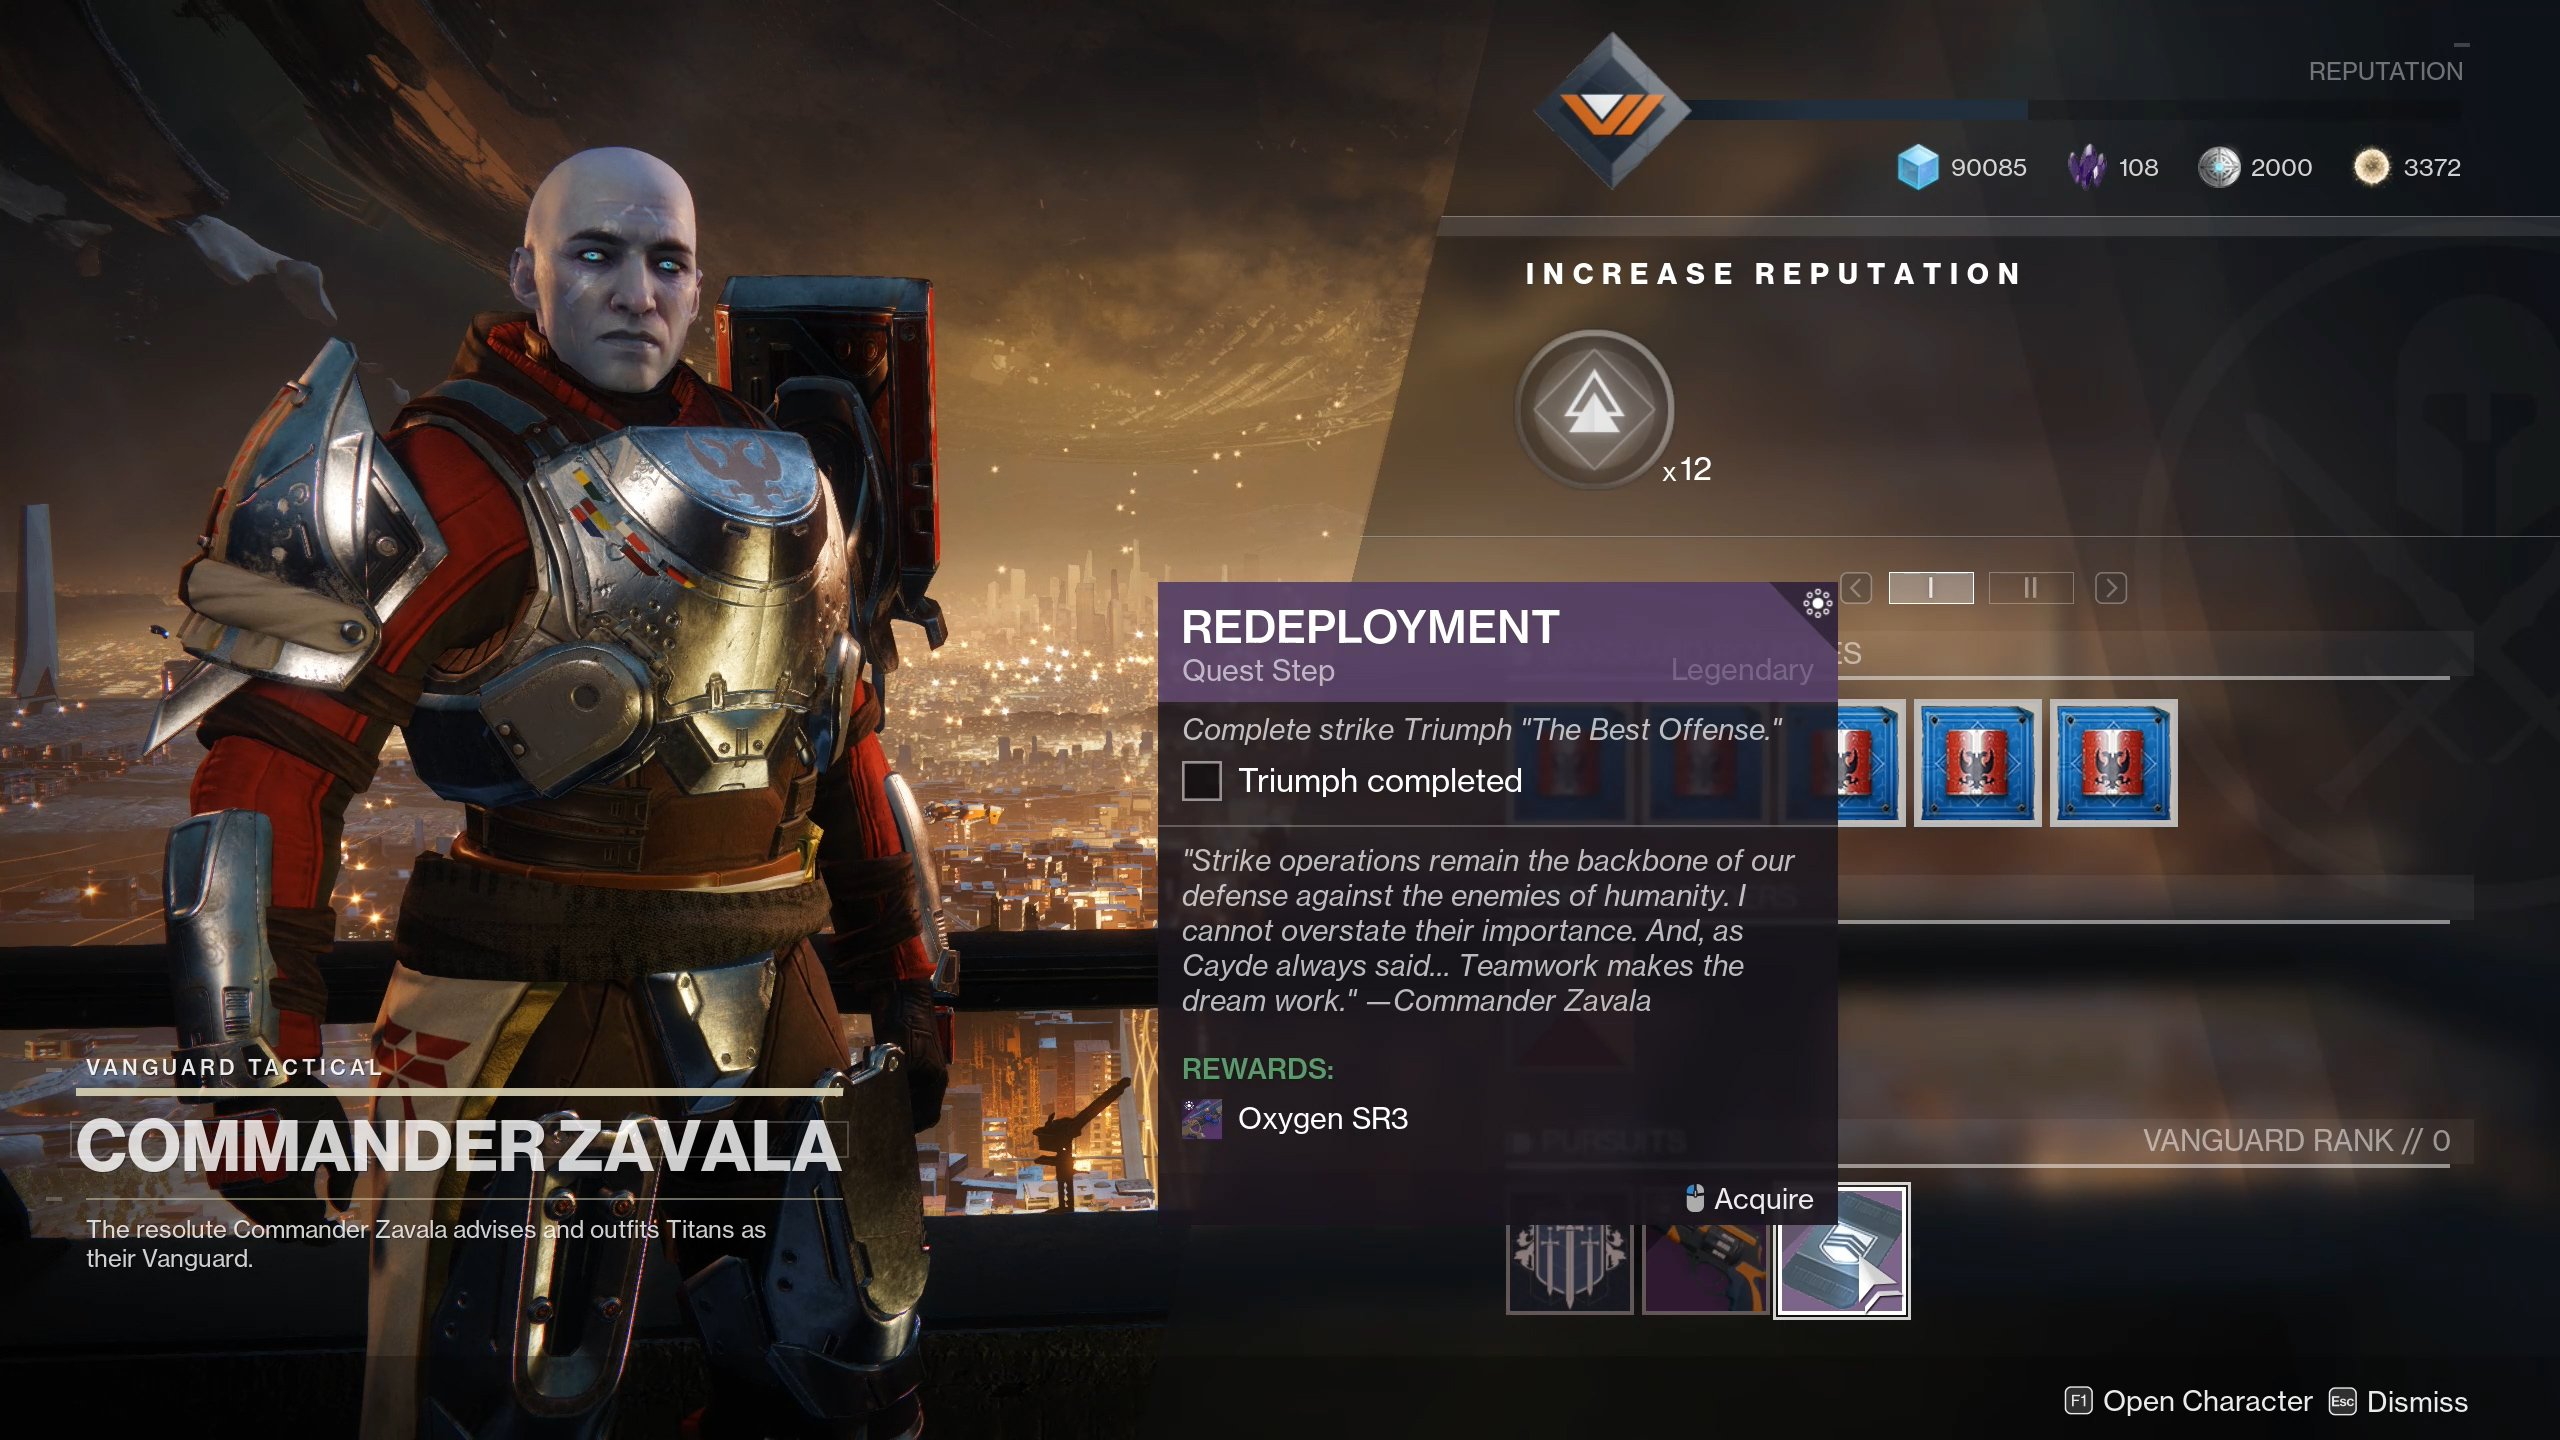 Destiny 2 Redeployment quest step